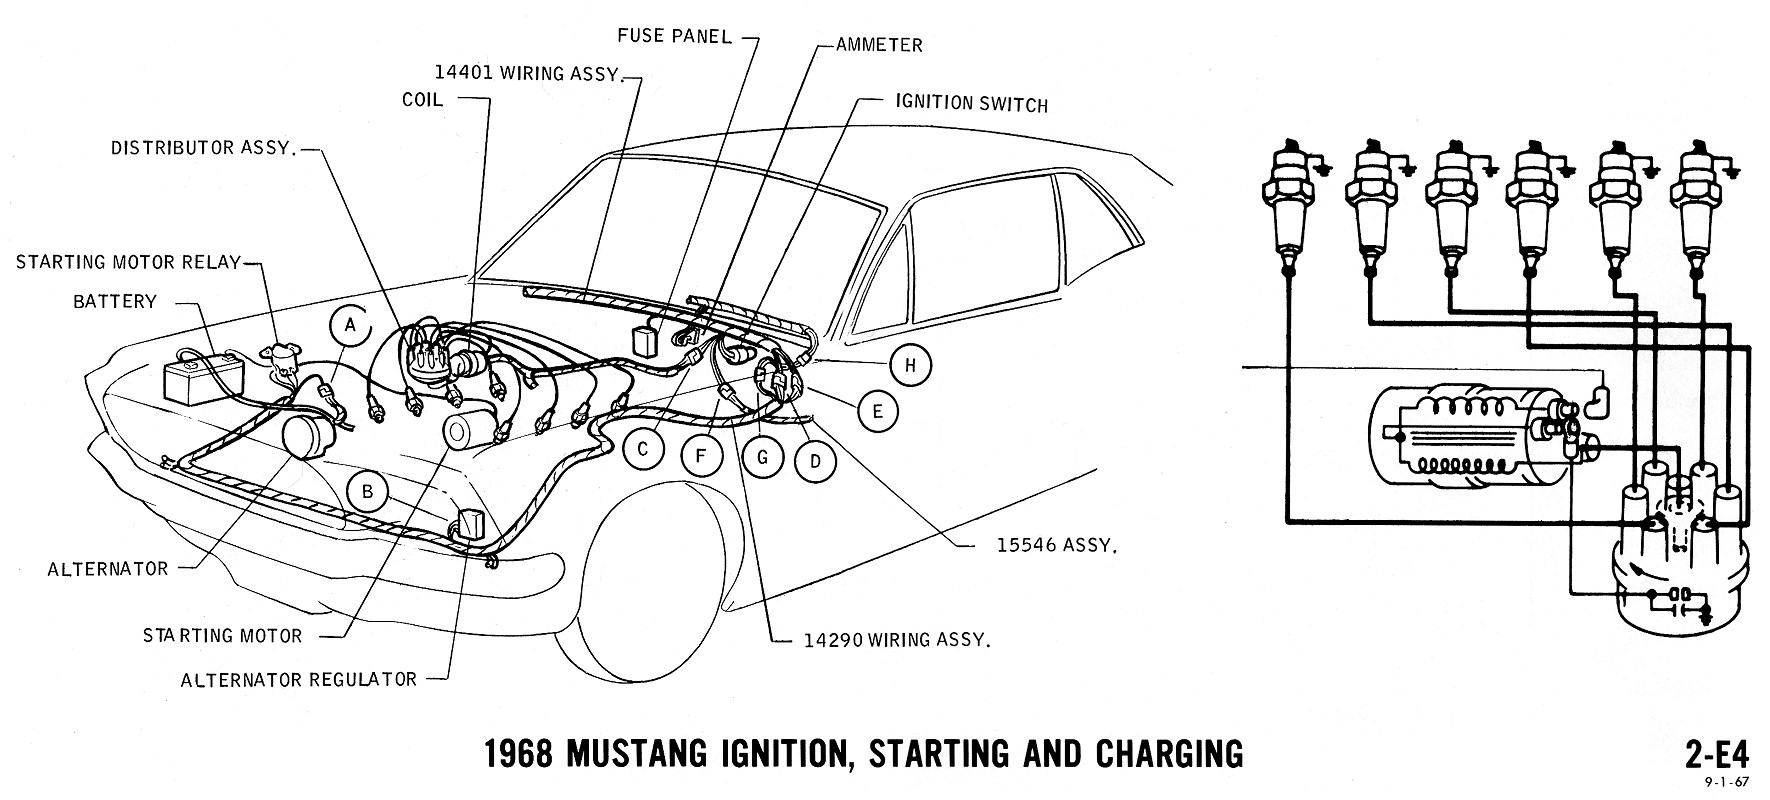 1966 mustang dash light wiring diagram gsxr 600 2005 1968 diagrams and vacuum schematics - average joe restoration